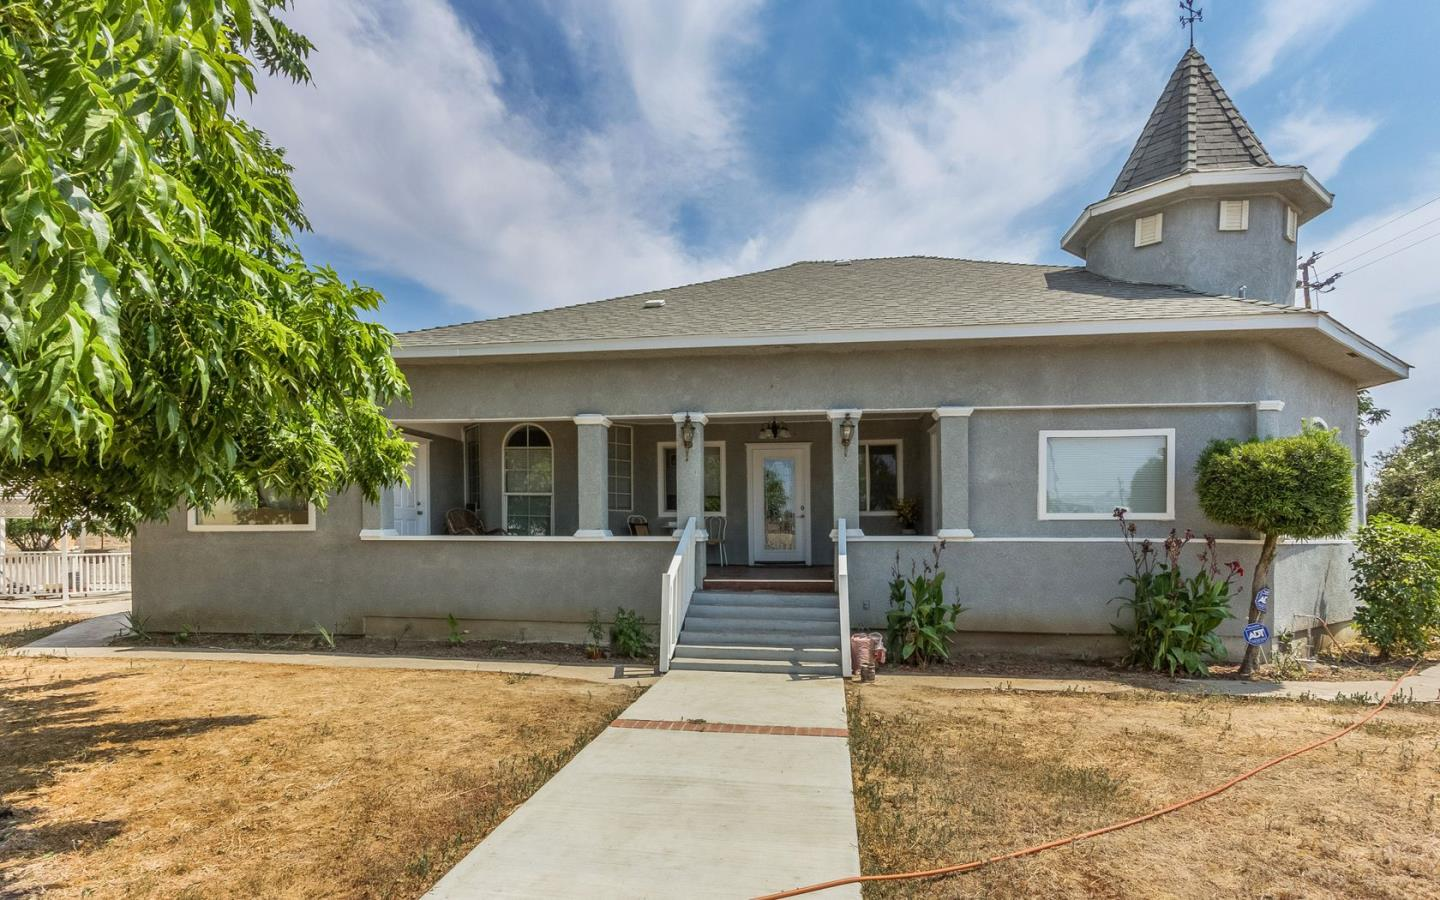 Single Family Home for Sale at 41496 Road 104 41496 Road 104 Dinuba, California 93618 United States